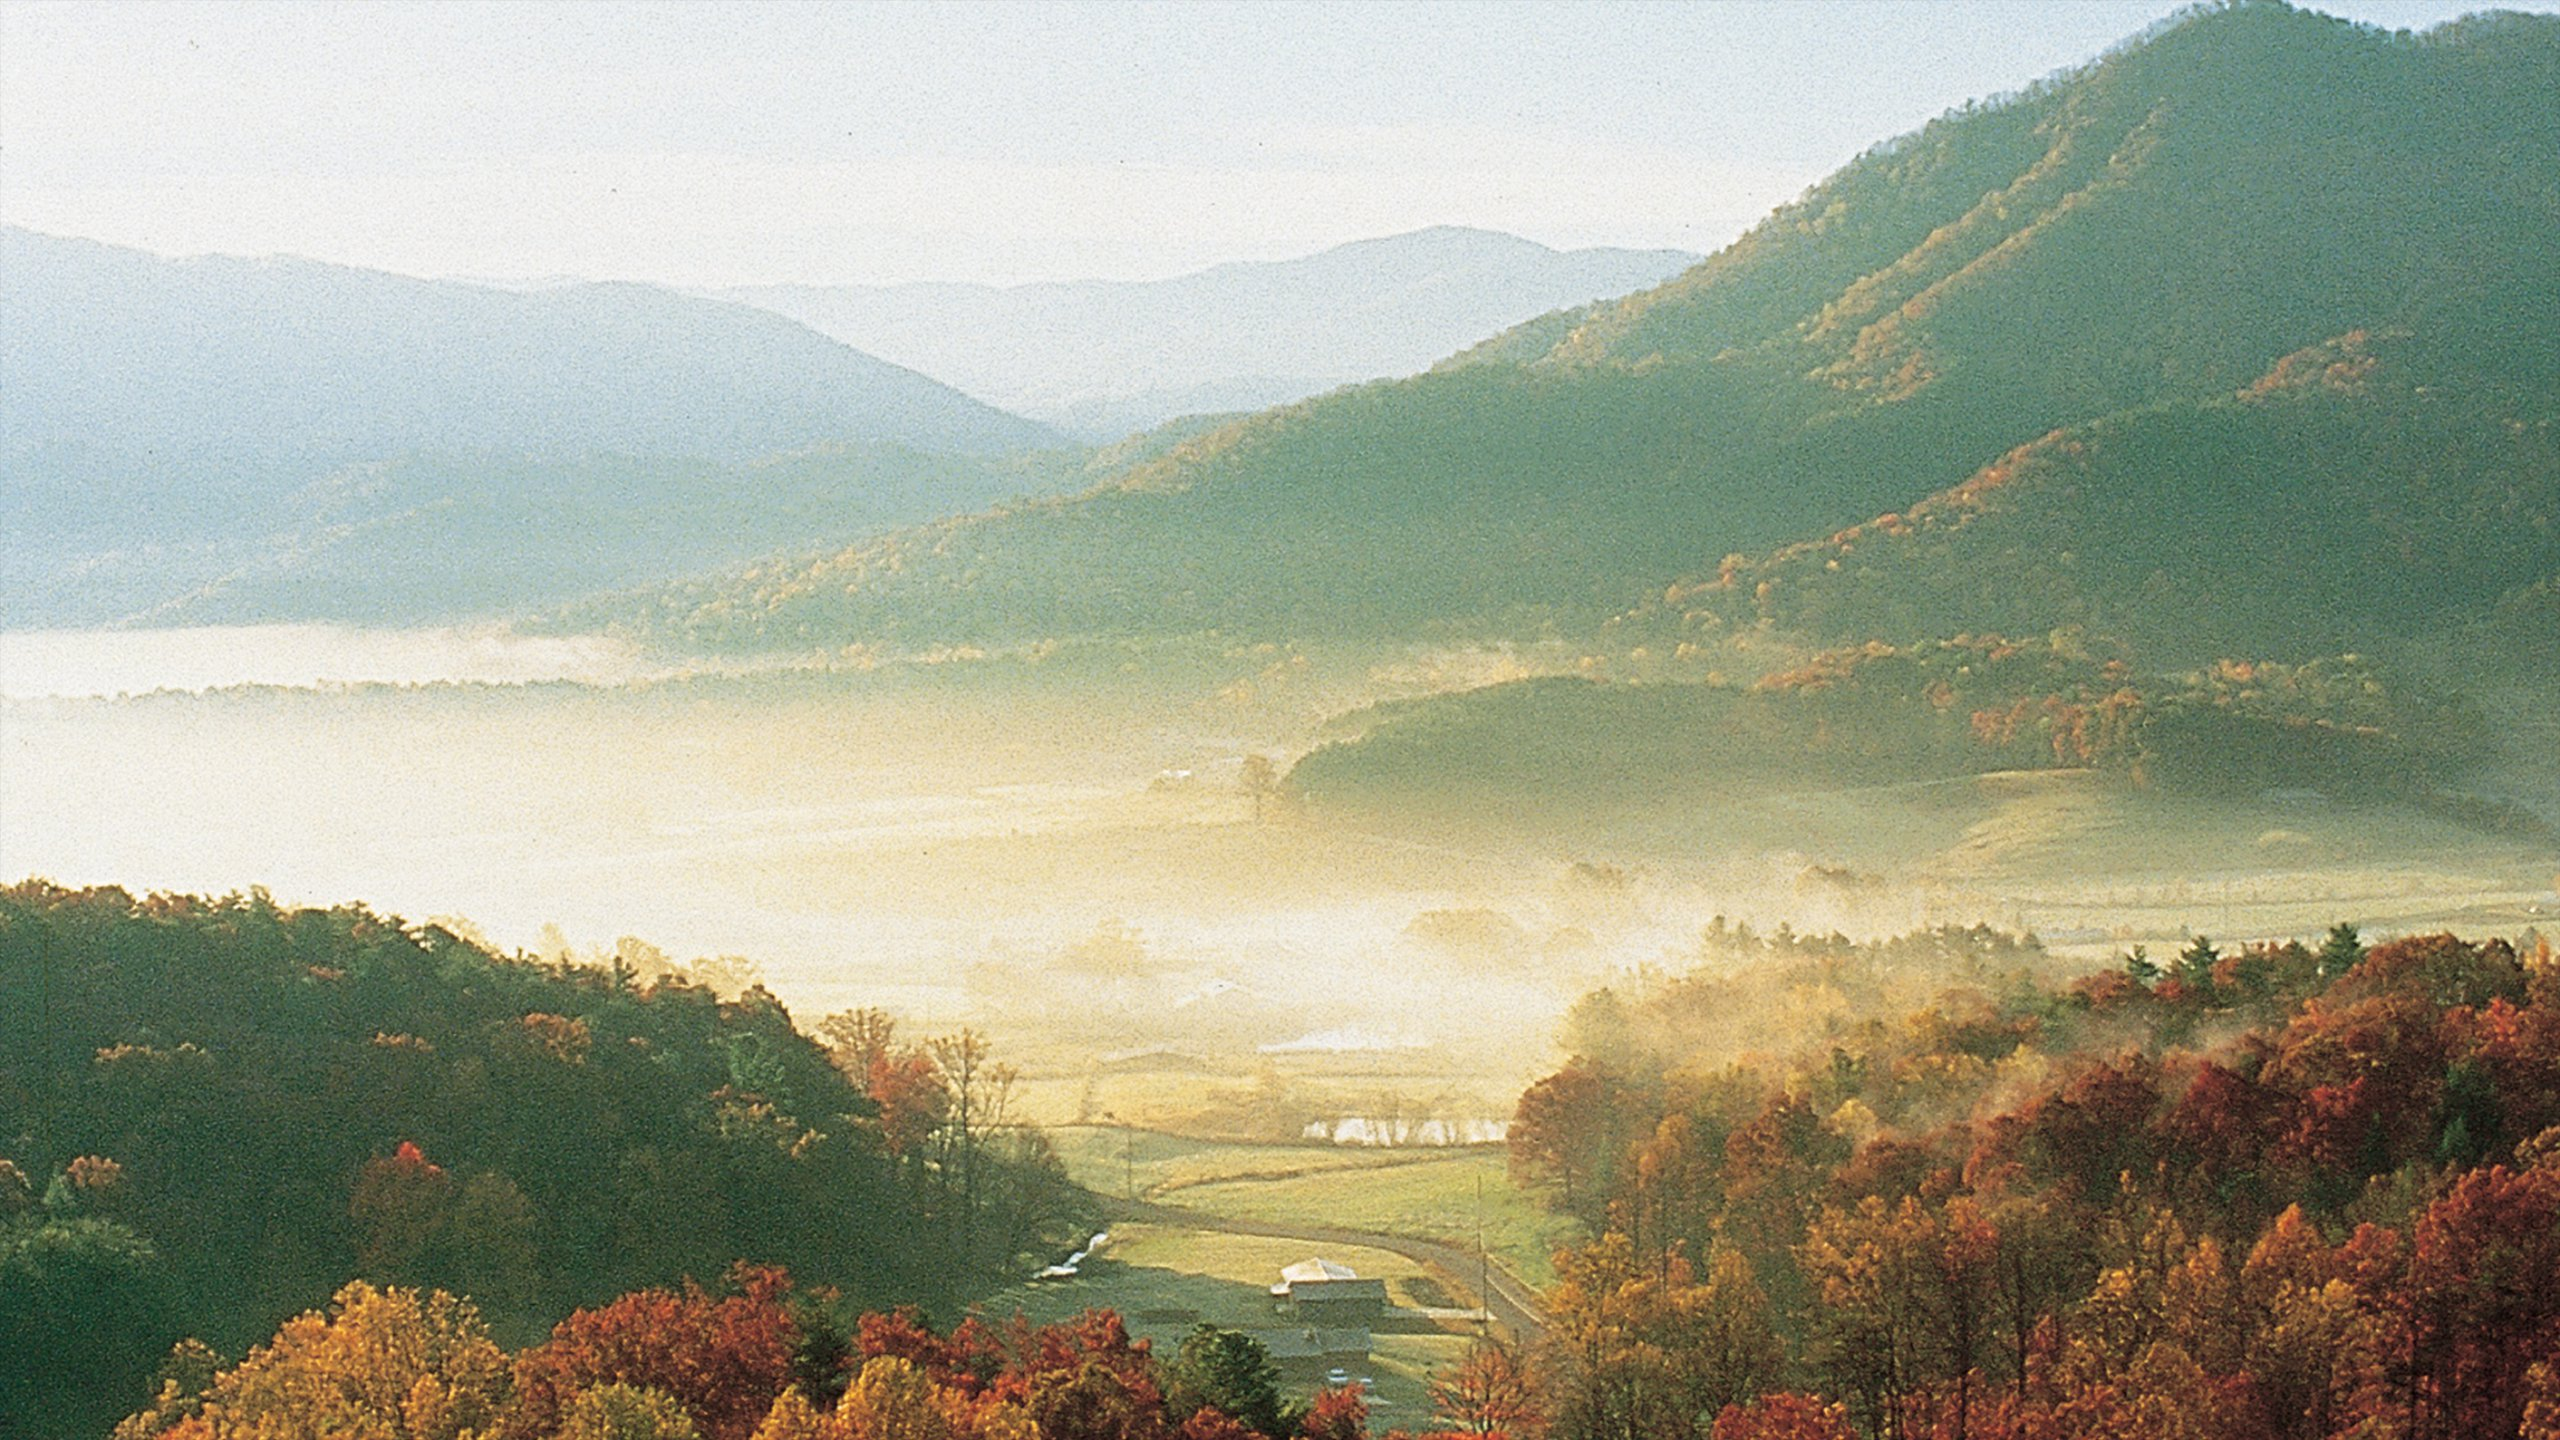 Pigeon Forge, Tennessee, United States of America